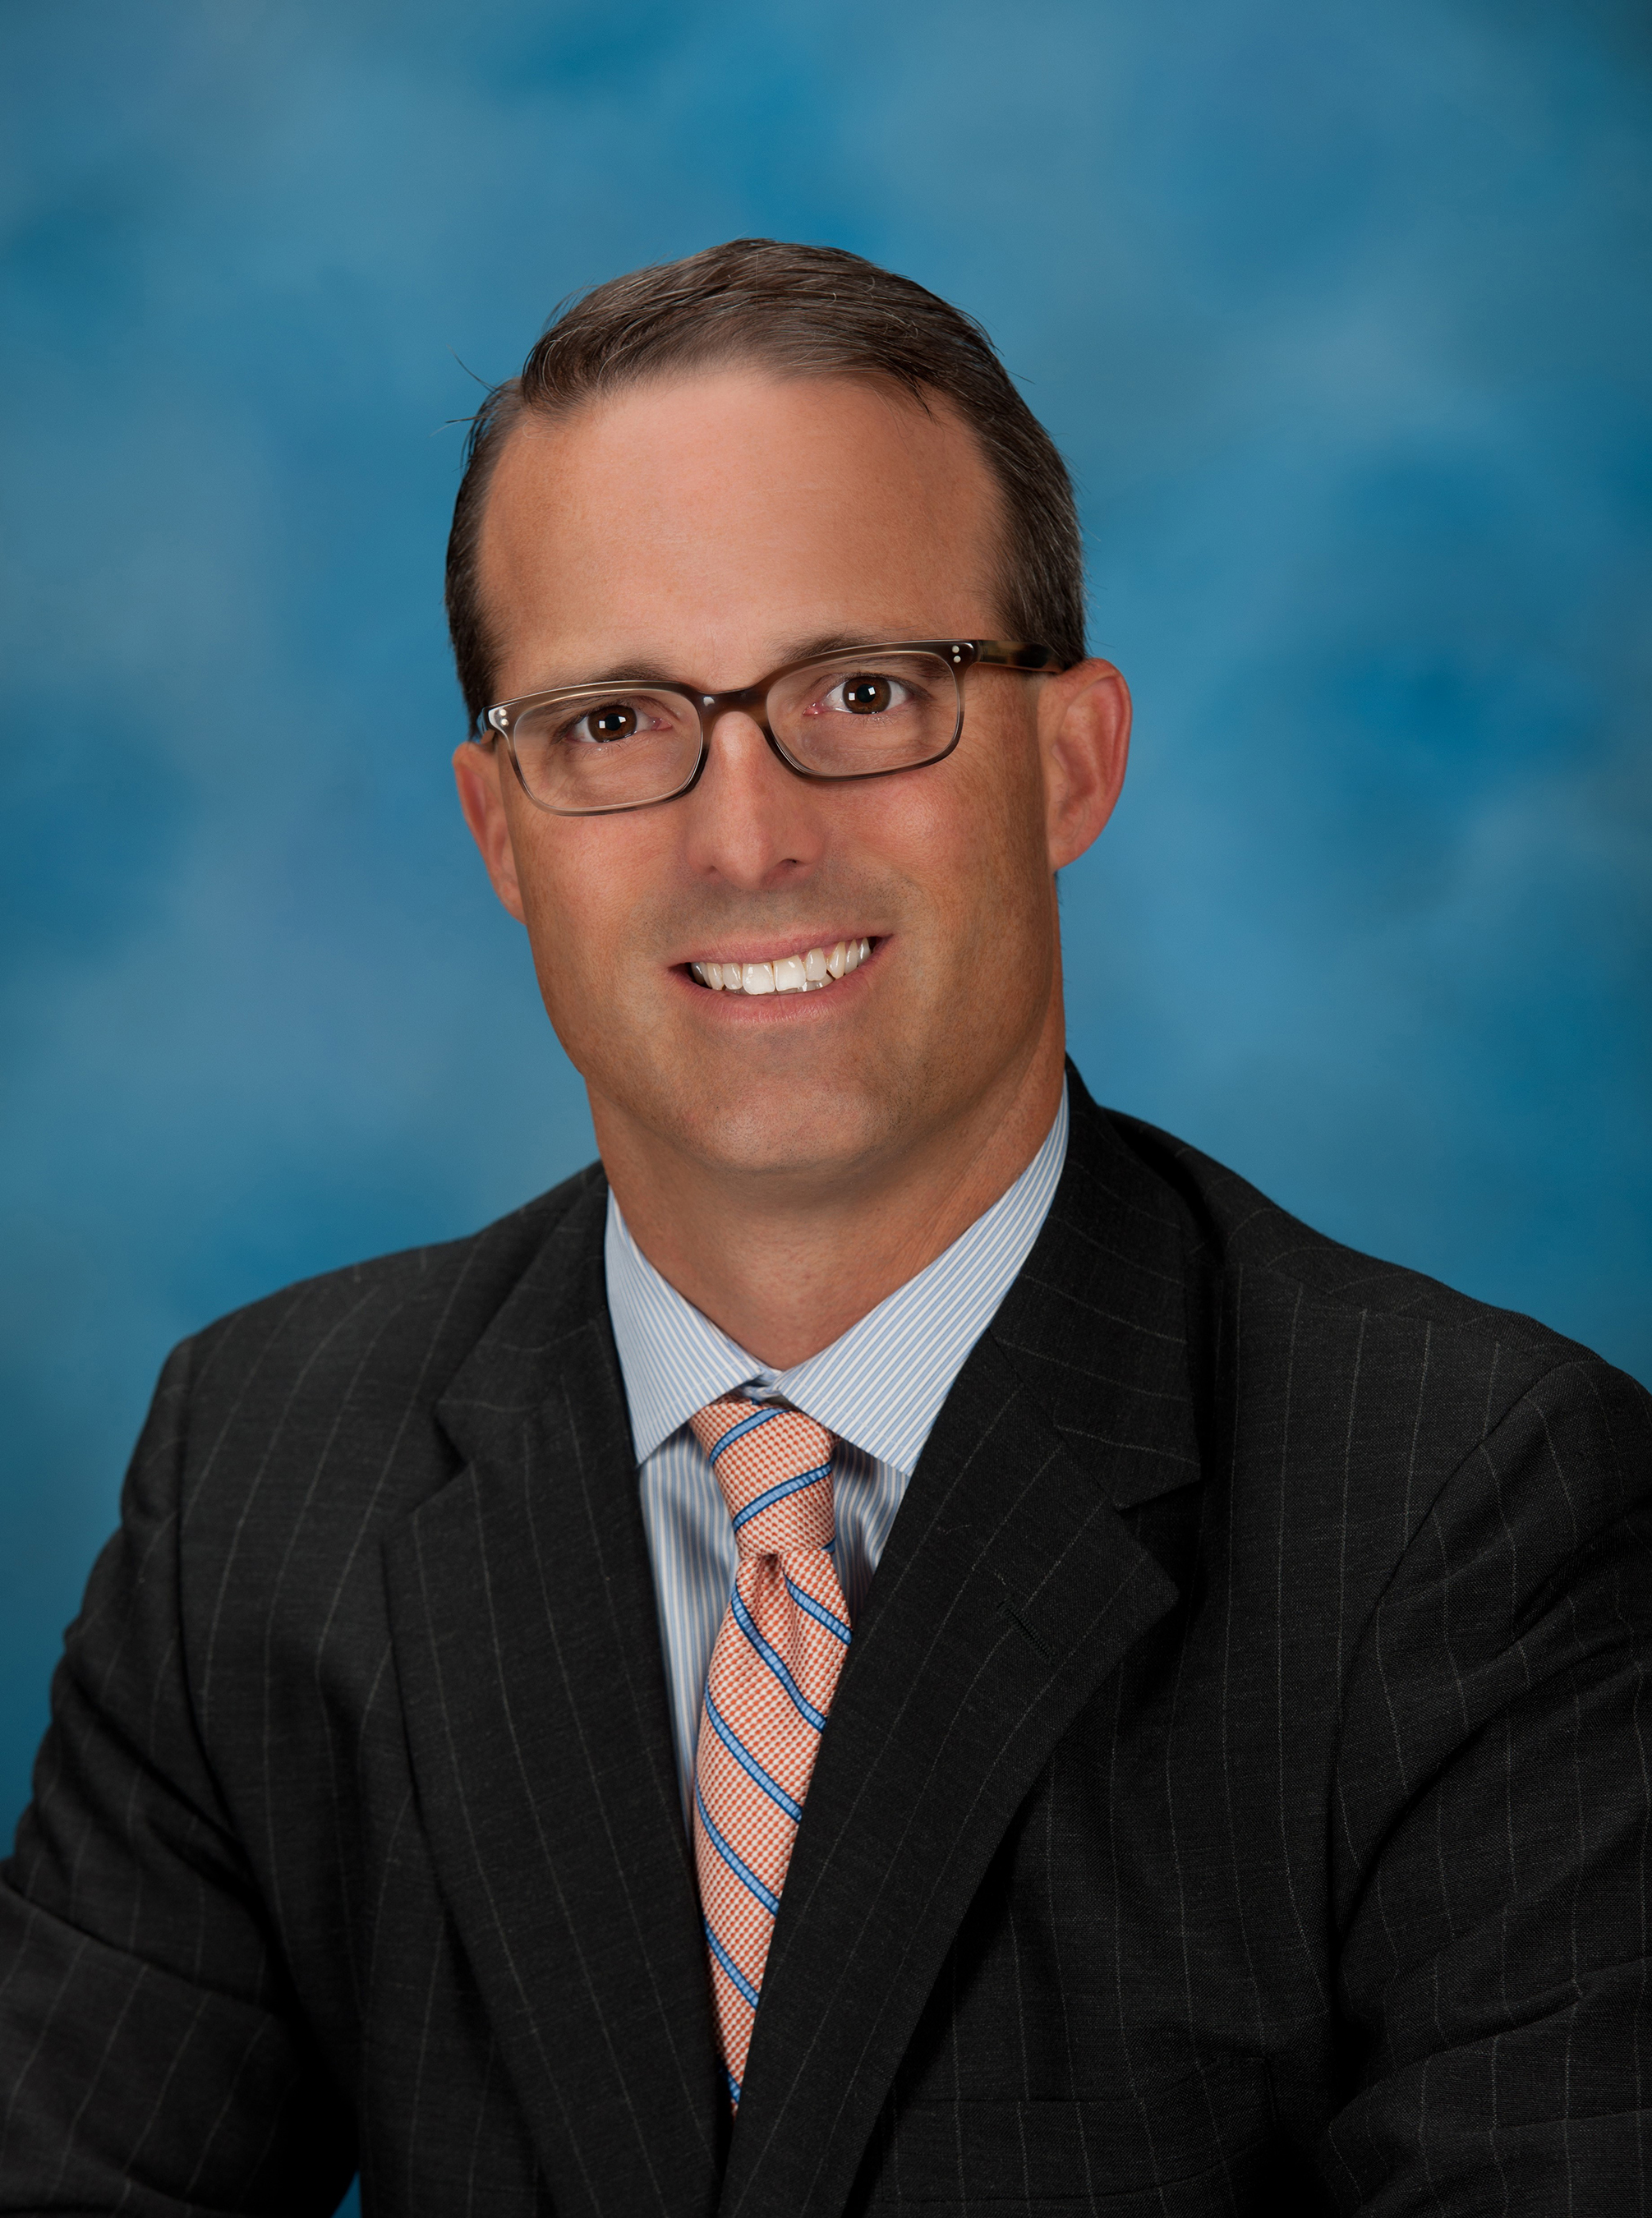 Ted Davis, President and Chief Executive Officer of Active Implants (Photo: Business Wire)